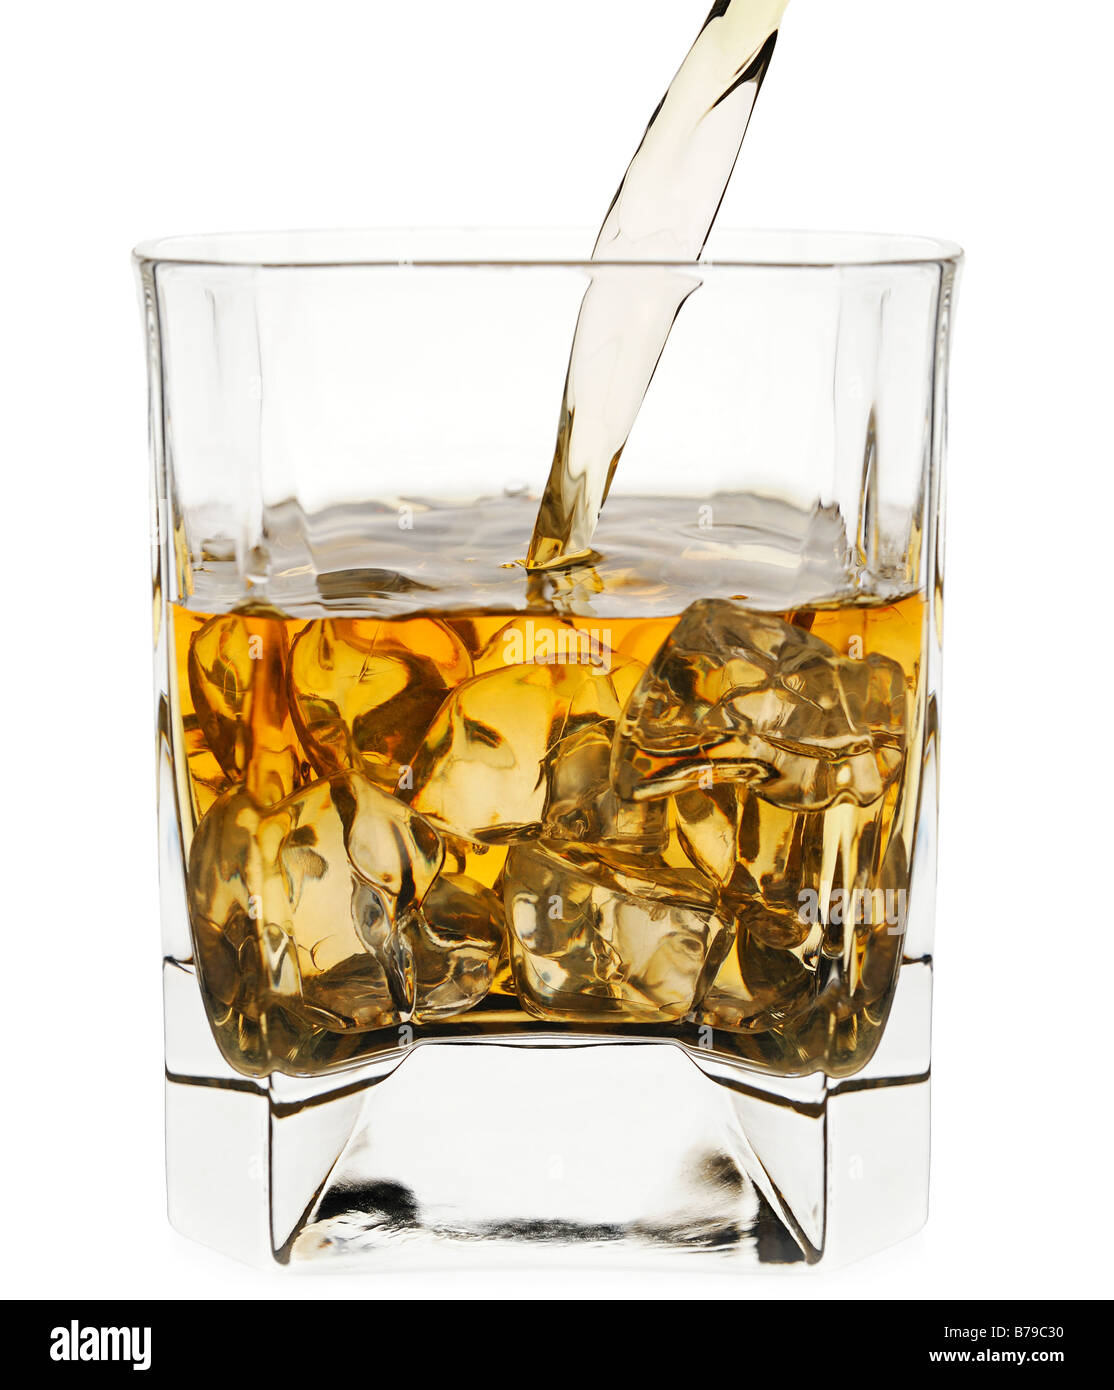 Verser dans un verre de Whisky Close Up Photo Stock